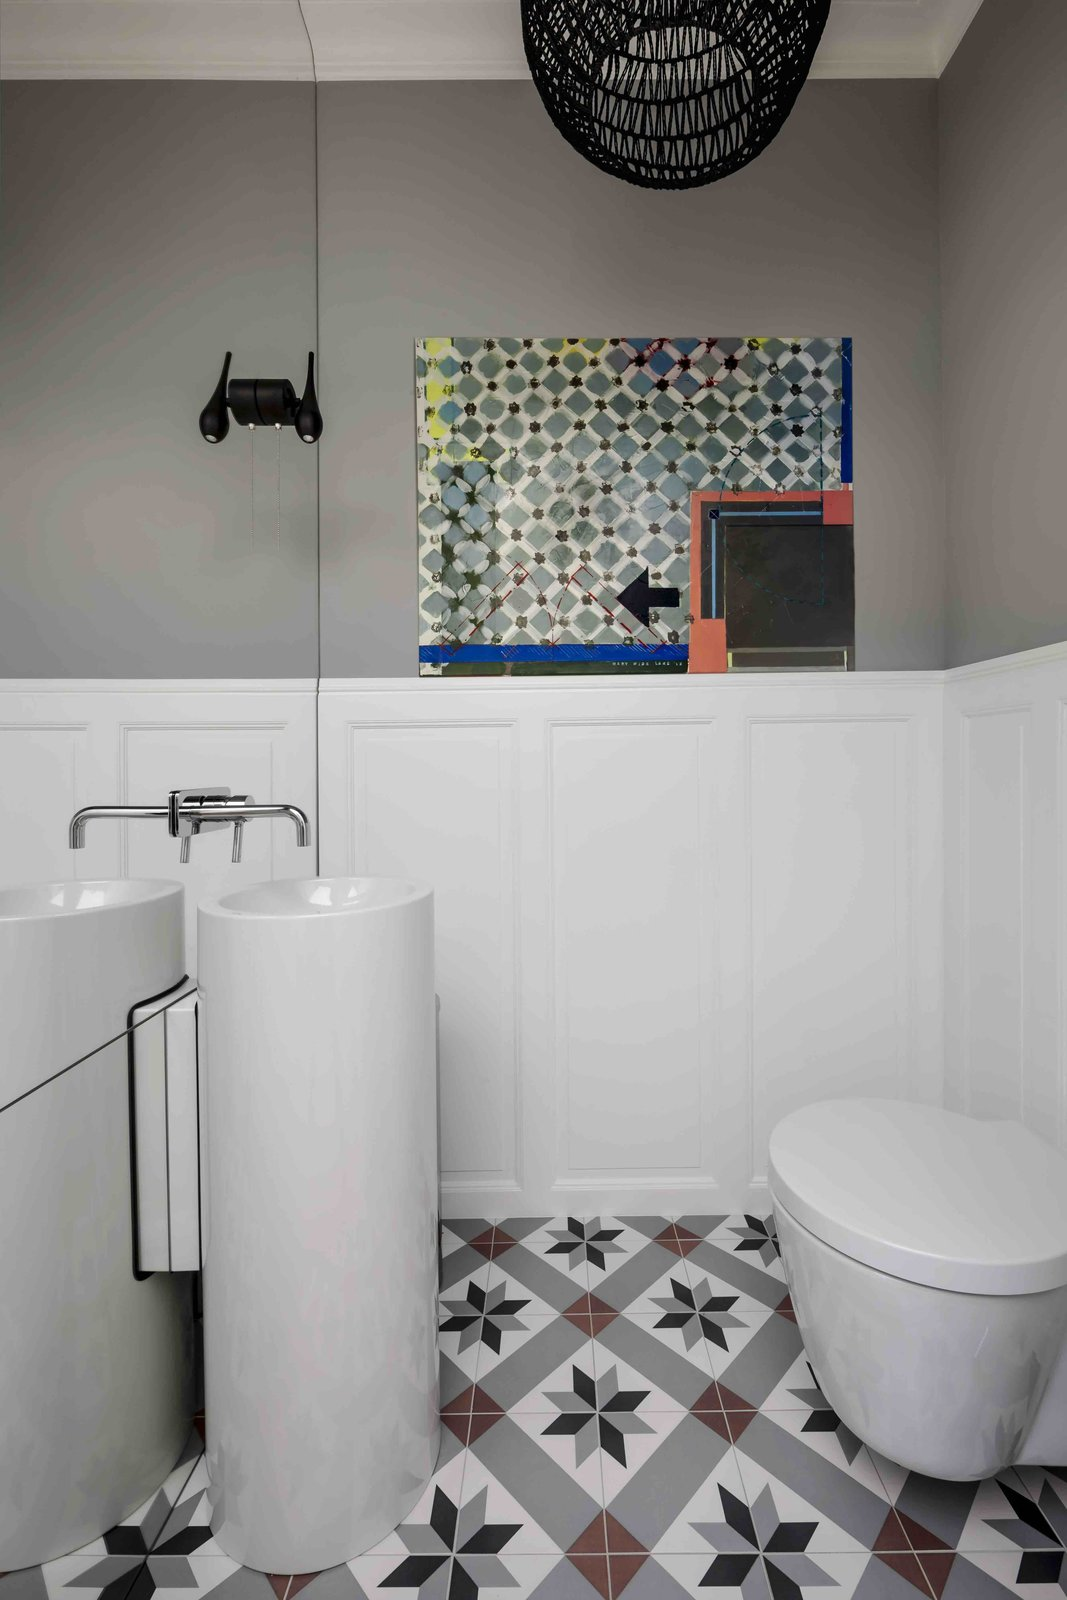 Bath Room, One Piece Toilet, Wall Lighting, and Pedestal Sink  Photo 10 of 12 in Filled With Color and Pattern, This Eclectic Apartment Brings a Little Madrid to Warsaw